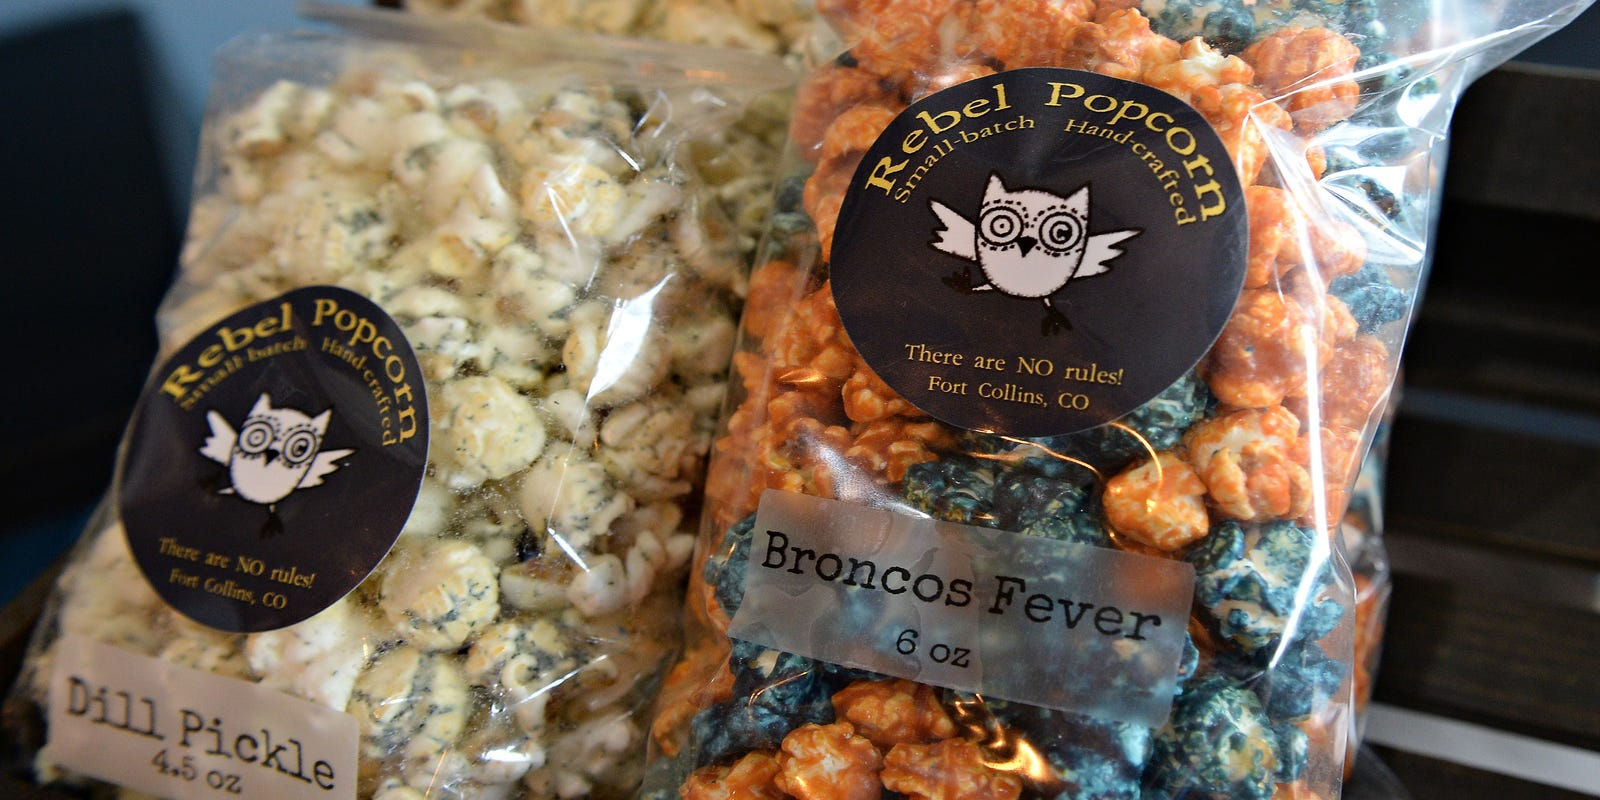 Fort Collins Specialty Popcorn Maker To Close This Week